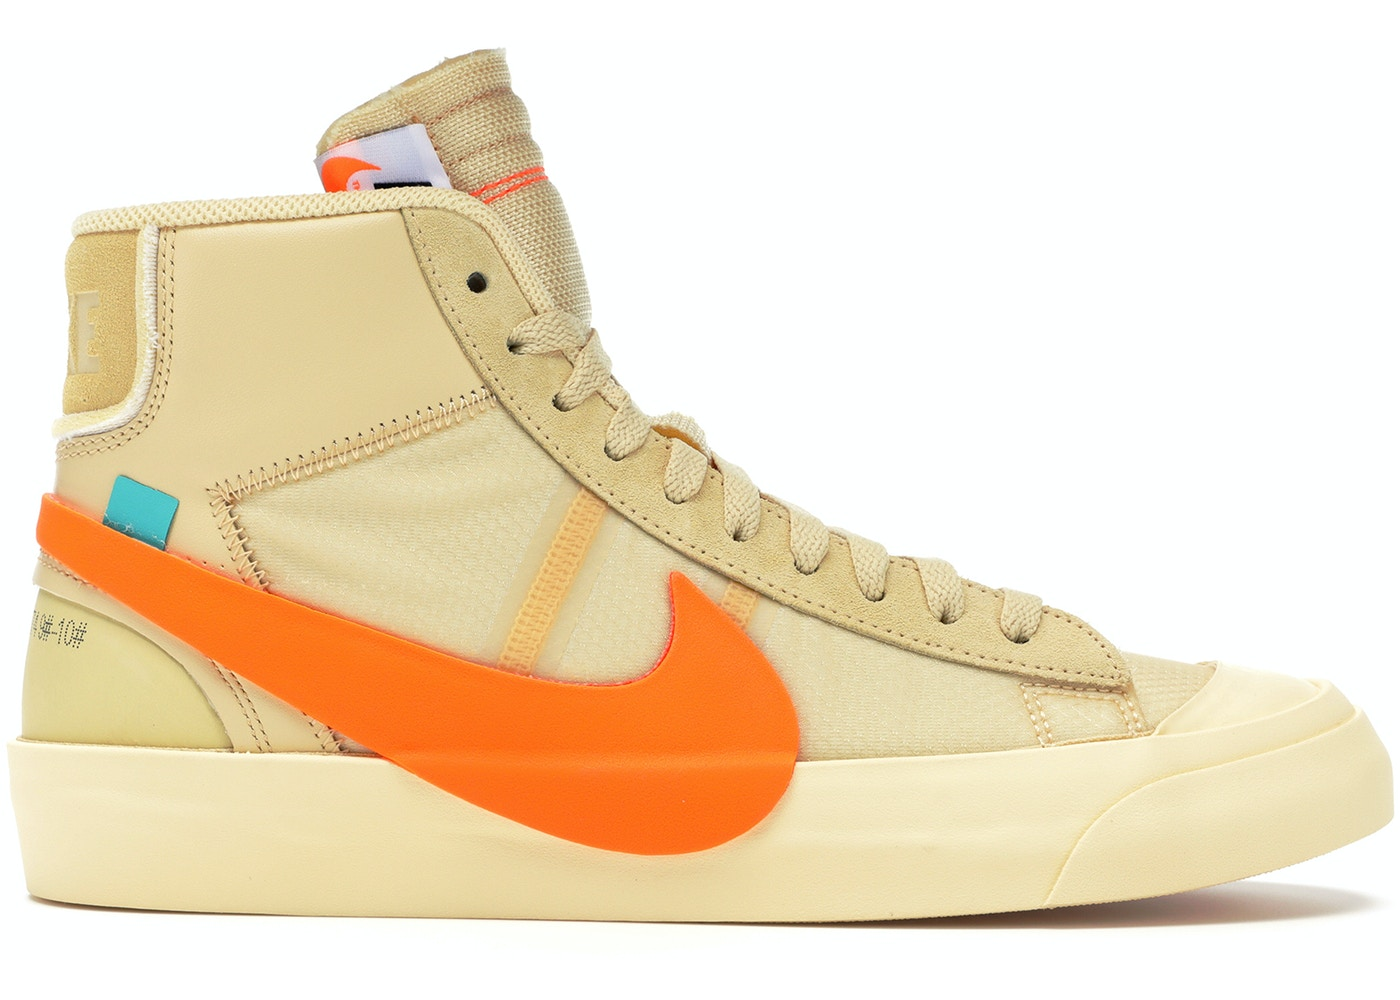 60dd03ebb45e Nike Blazer Mid Off-White All Hallow s Eve - AA3832-700